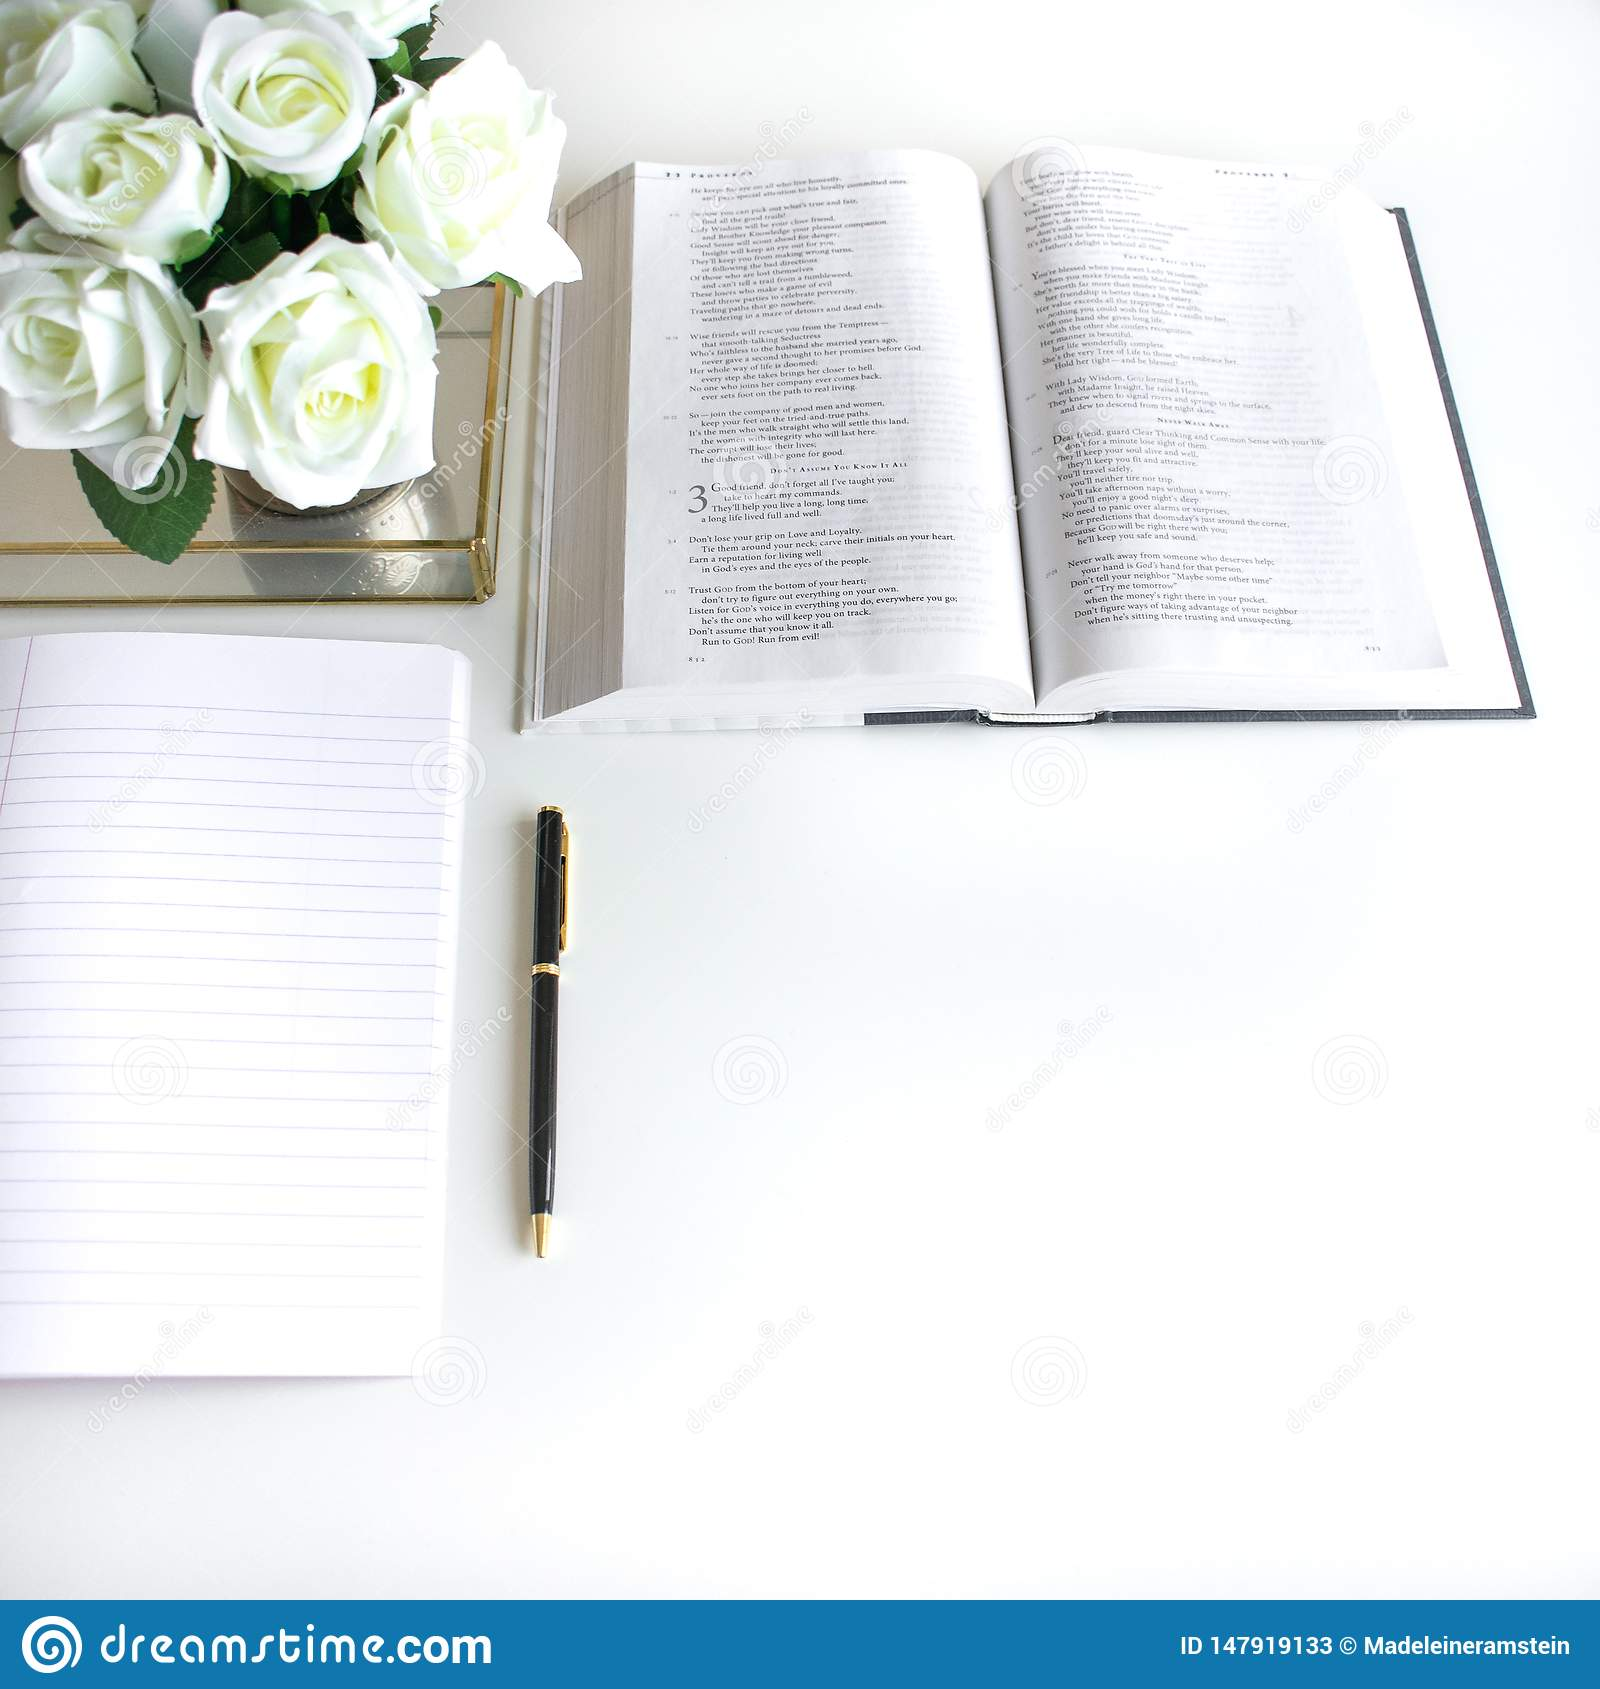 Flat lay with different accessories; flower bouquet, pink roses, open book, Bible